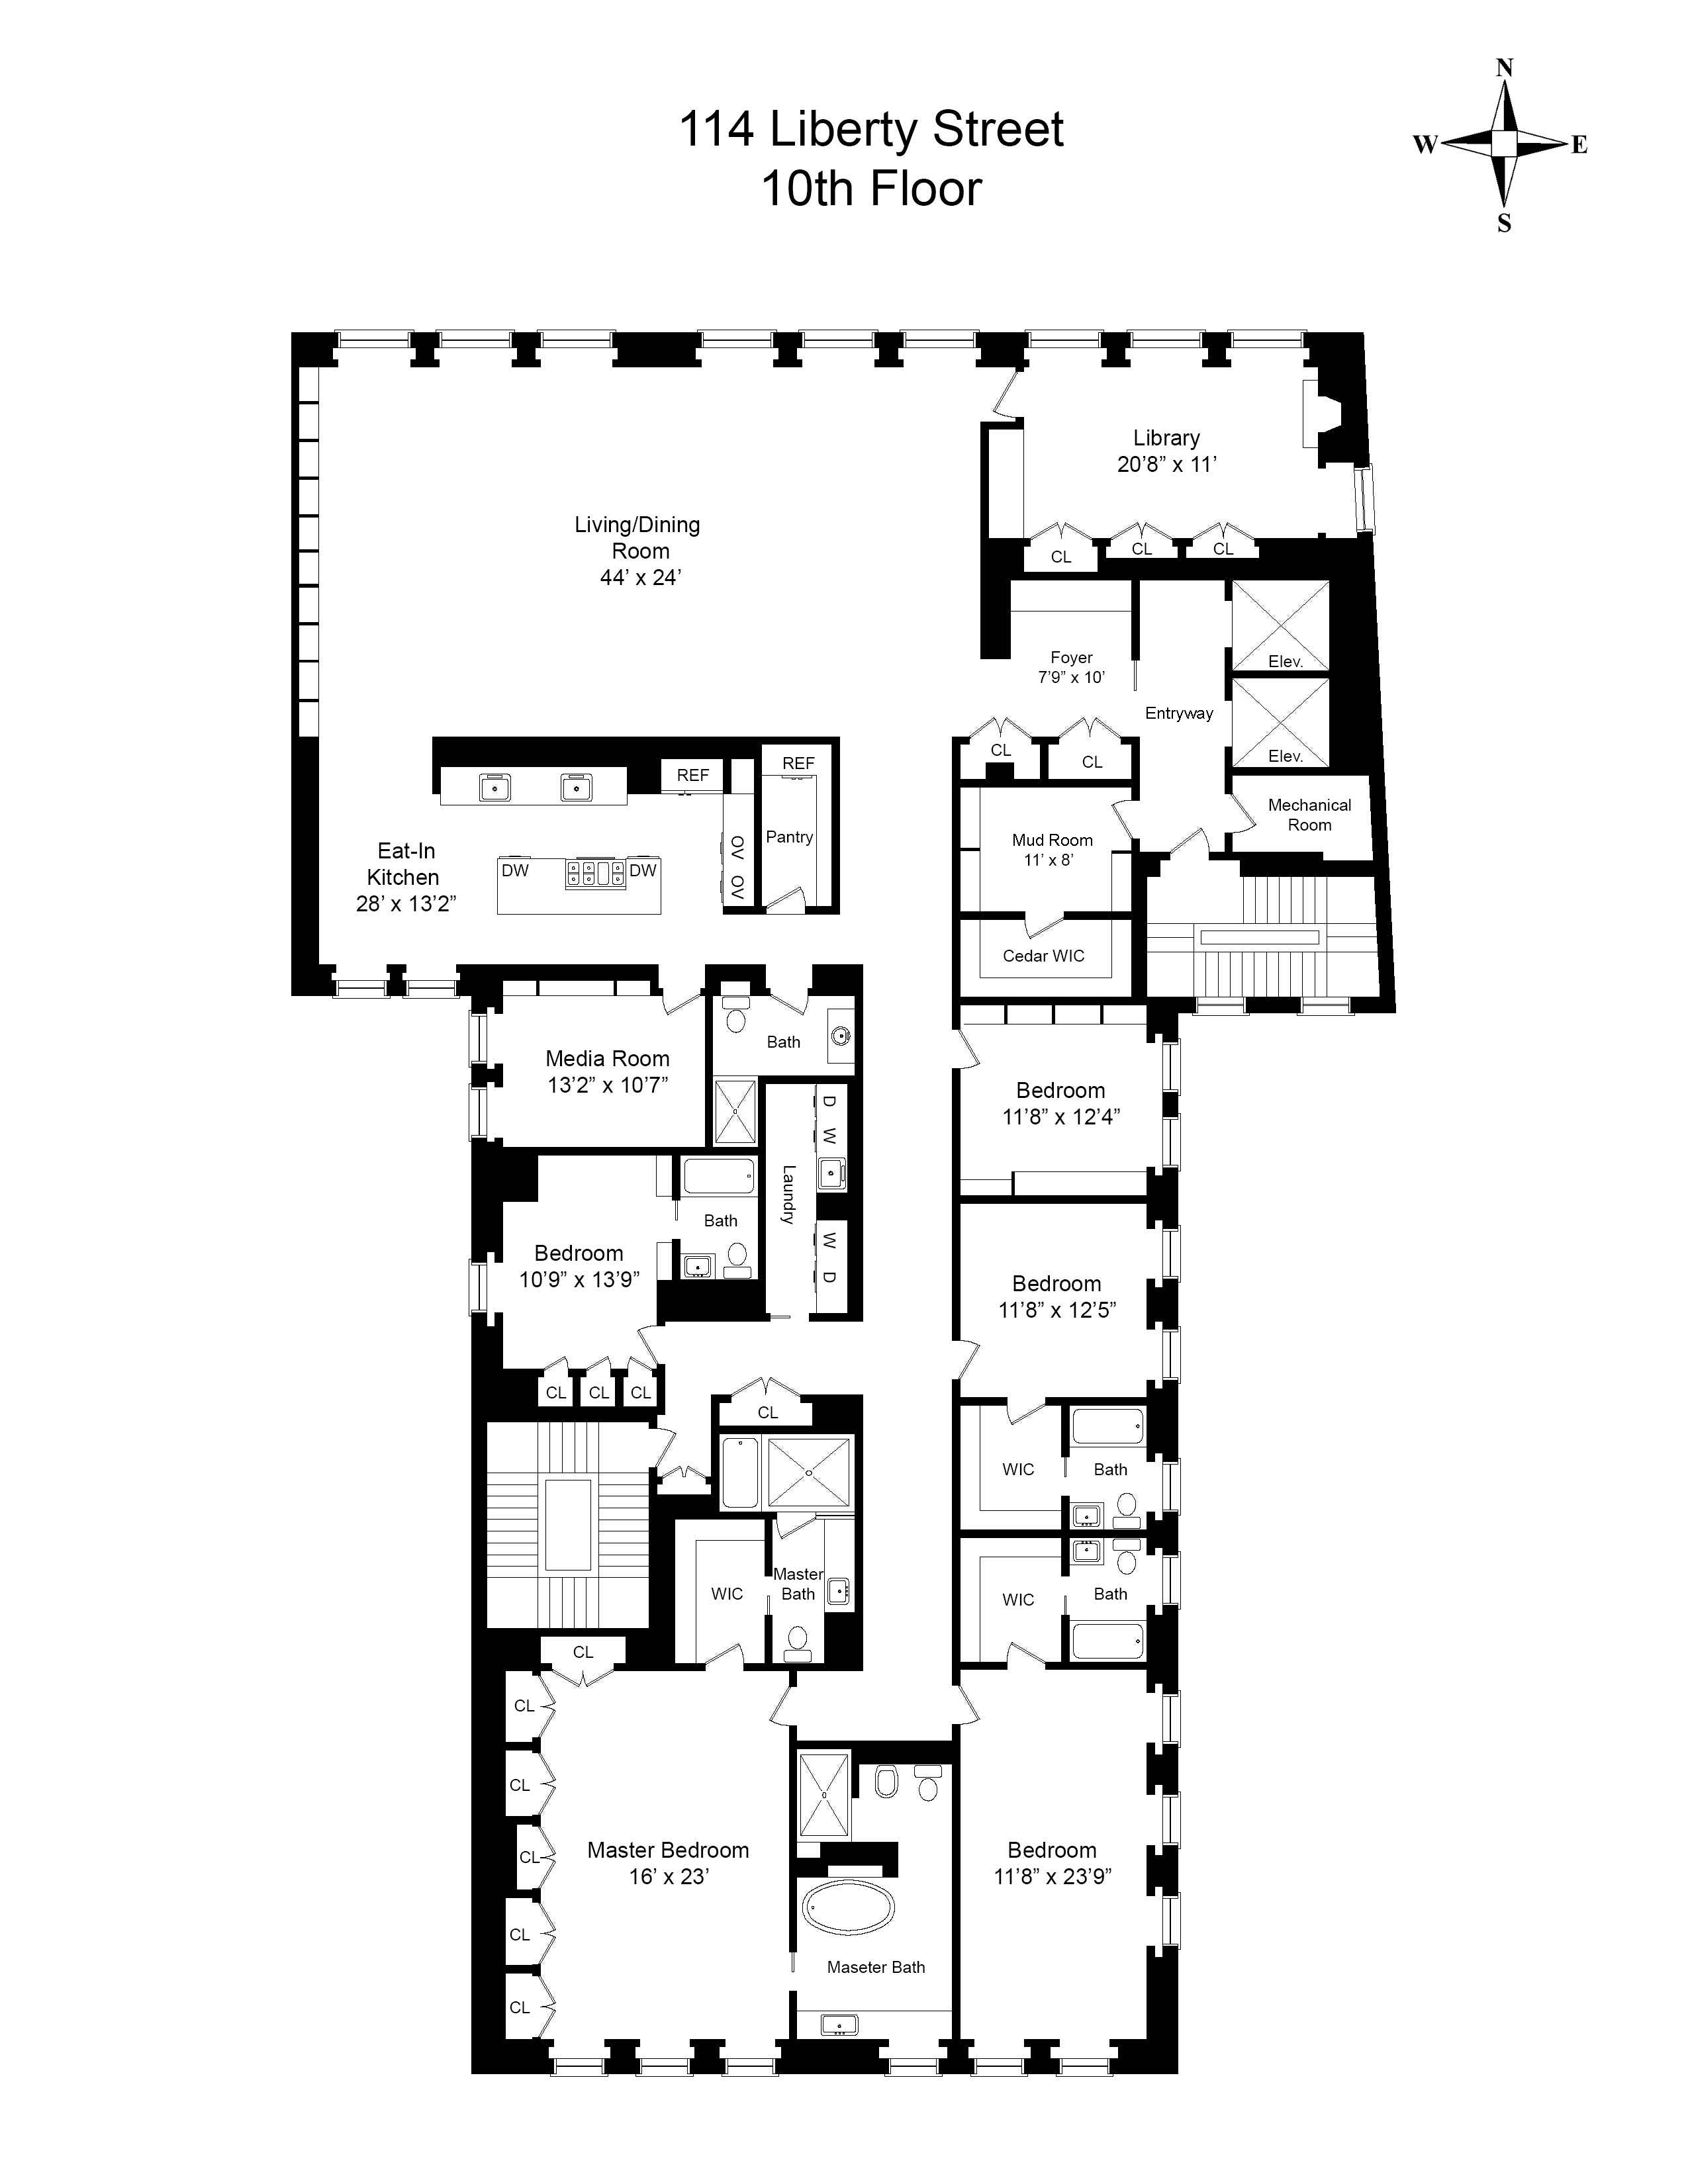 114 liberty street 10th floor new york ny 10006 for Luxury apartment floor plans nyc